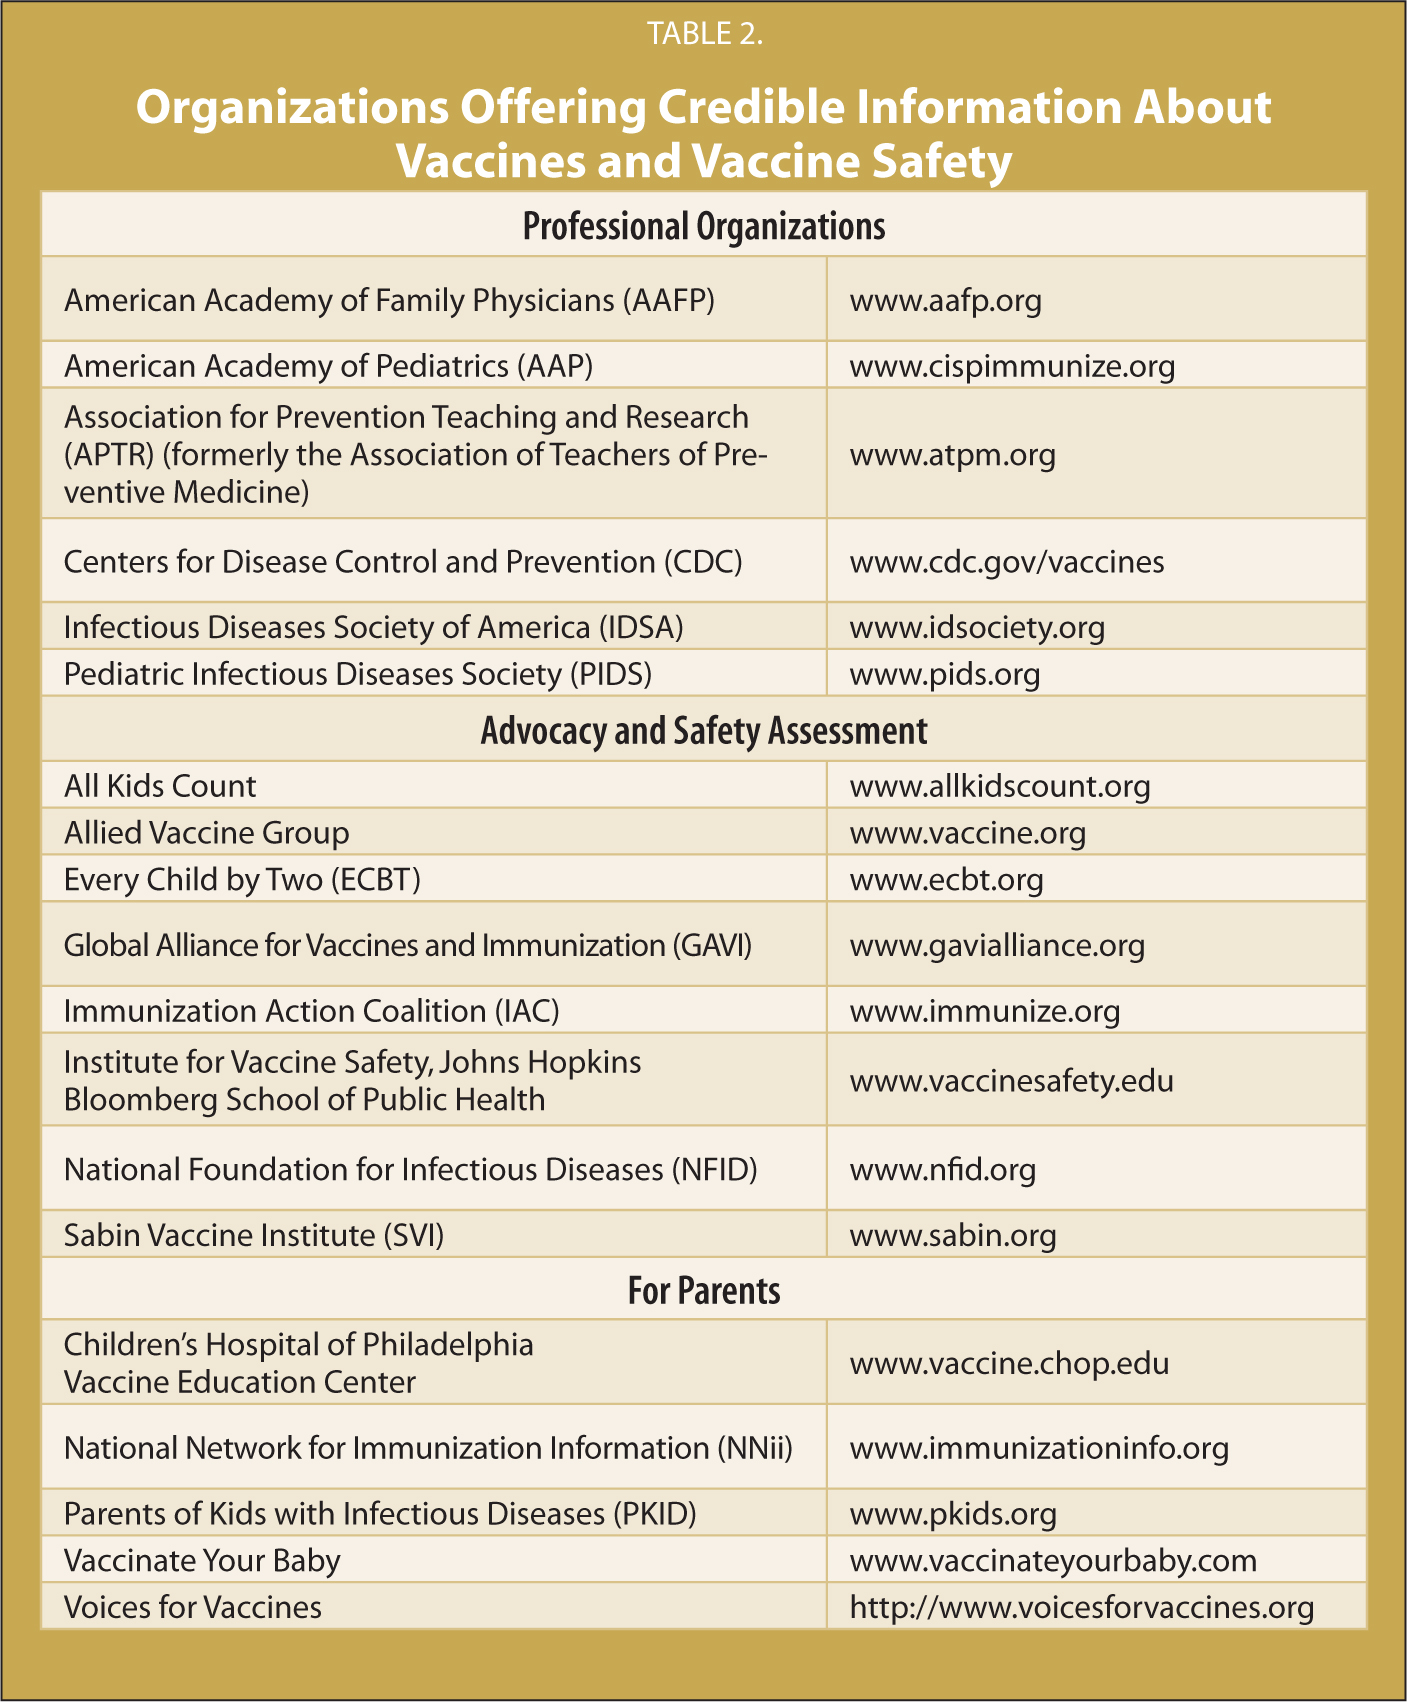 Organizations Offering Credible Information About Vaccines and Vaccine Safety